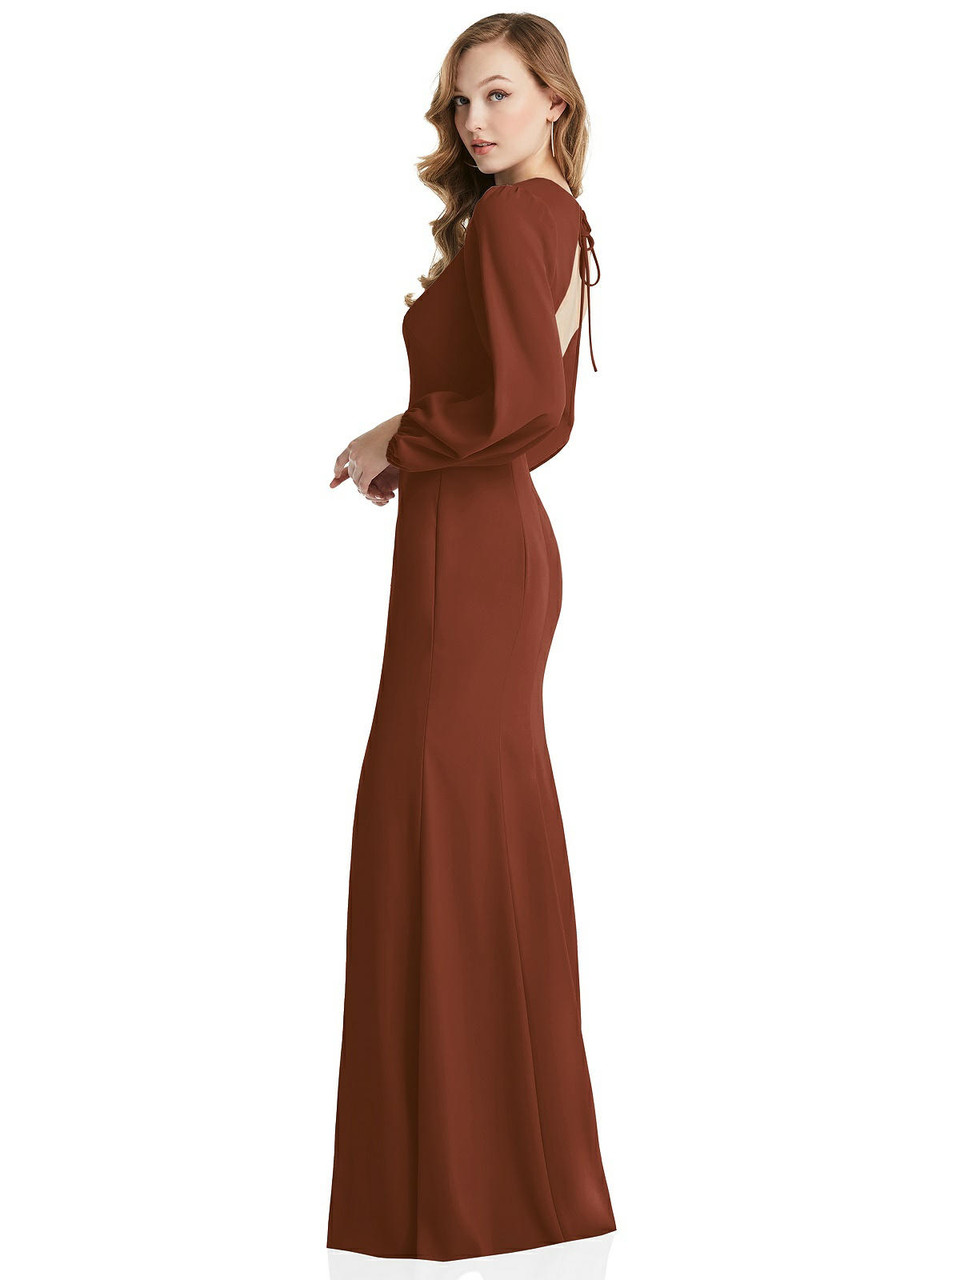 Long Puff Sleeve Maxi Dress with Cutout Tie-Back Dessy Collection Style 3089  |  Crepe